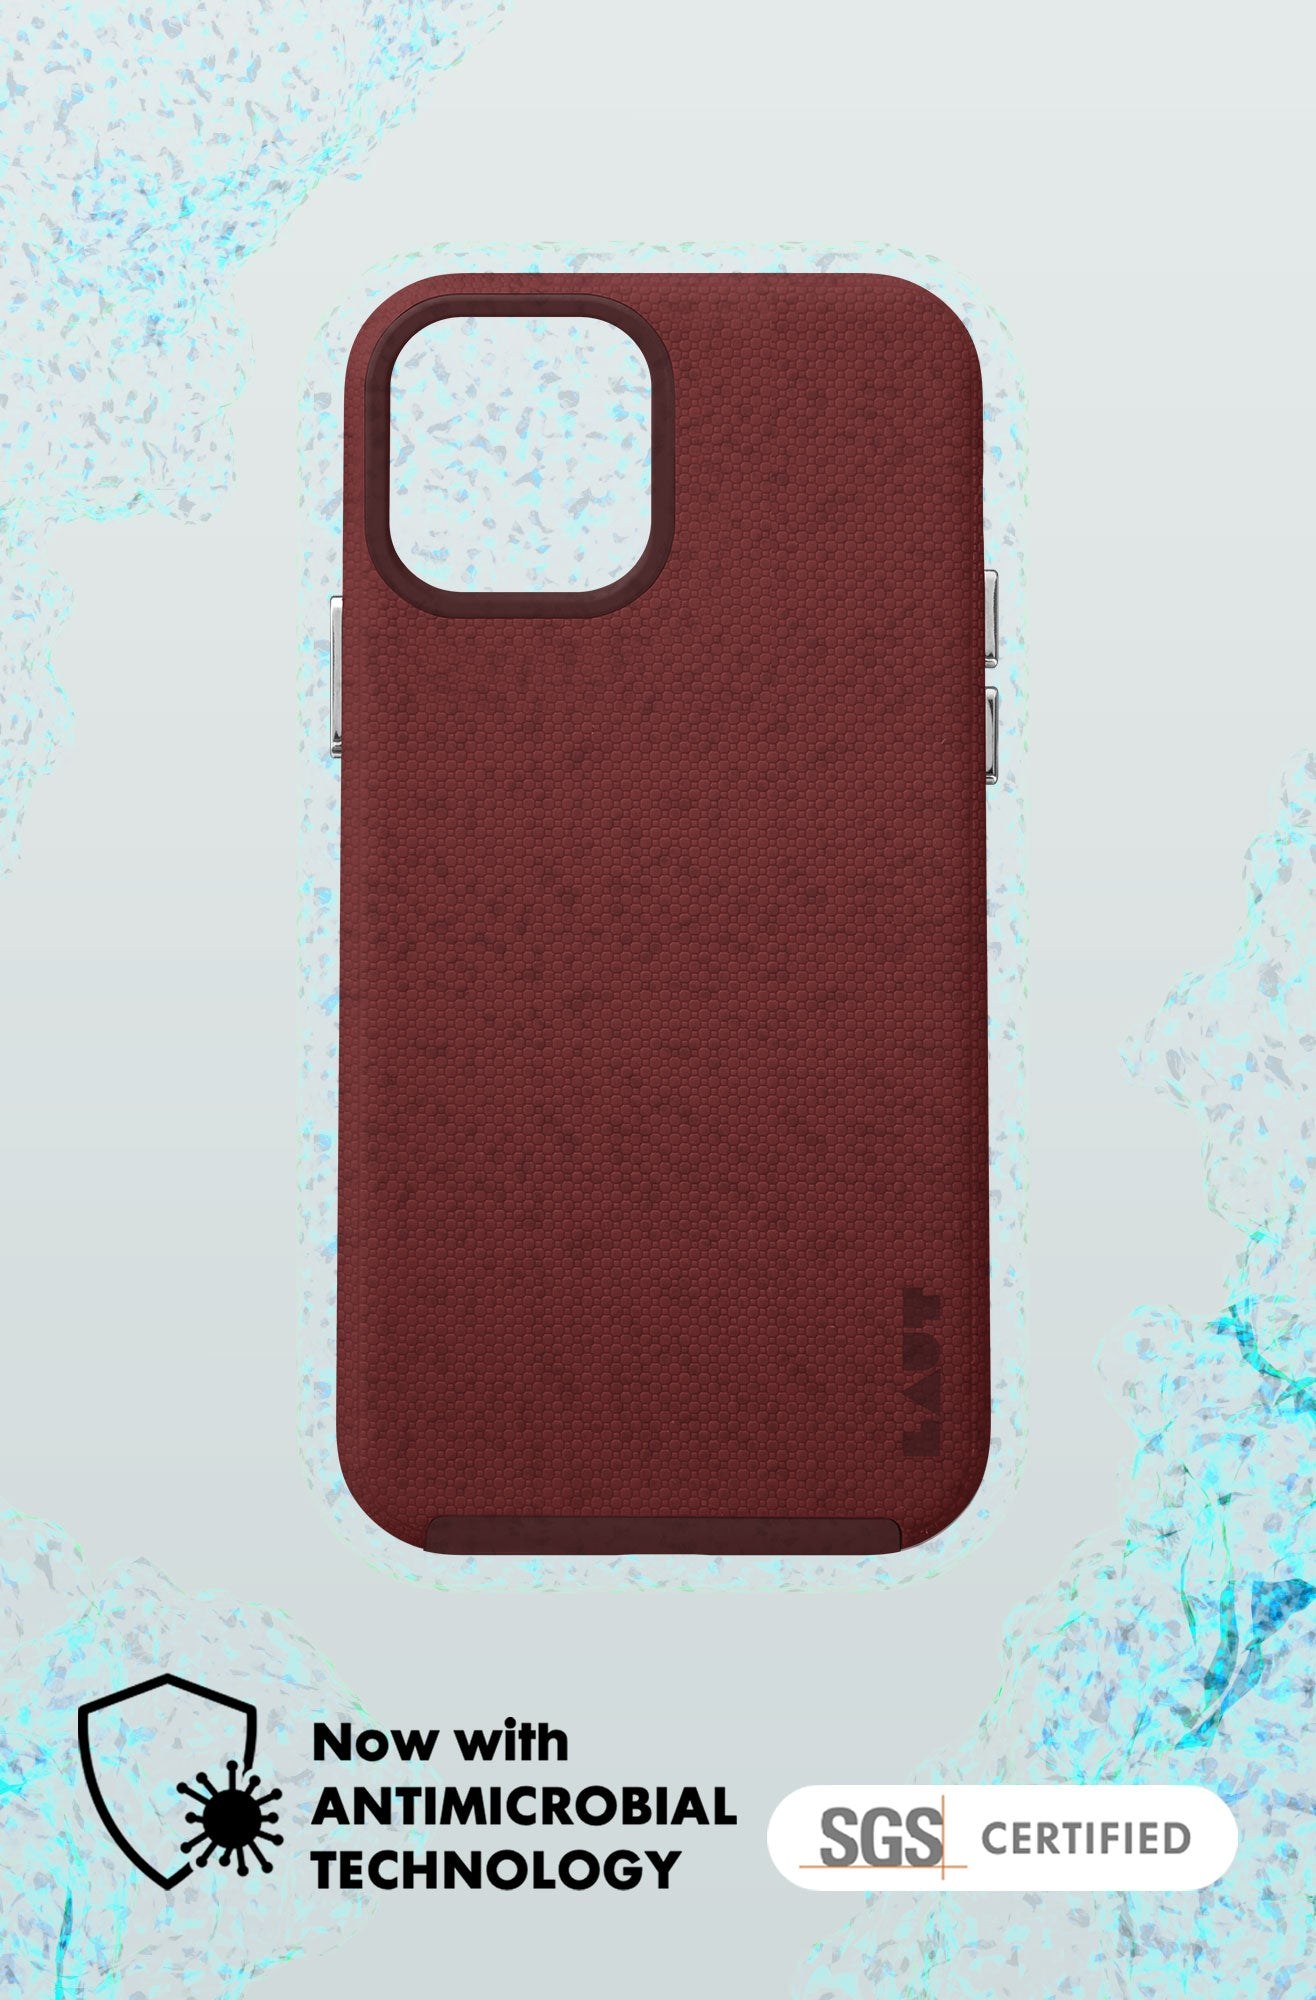 LAUT - SHIELD case for iPhone 12 series